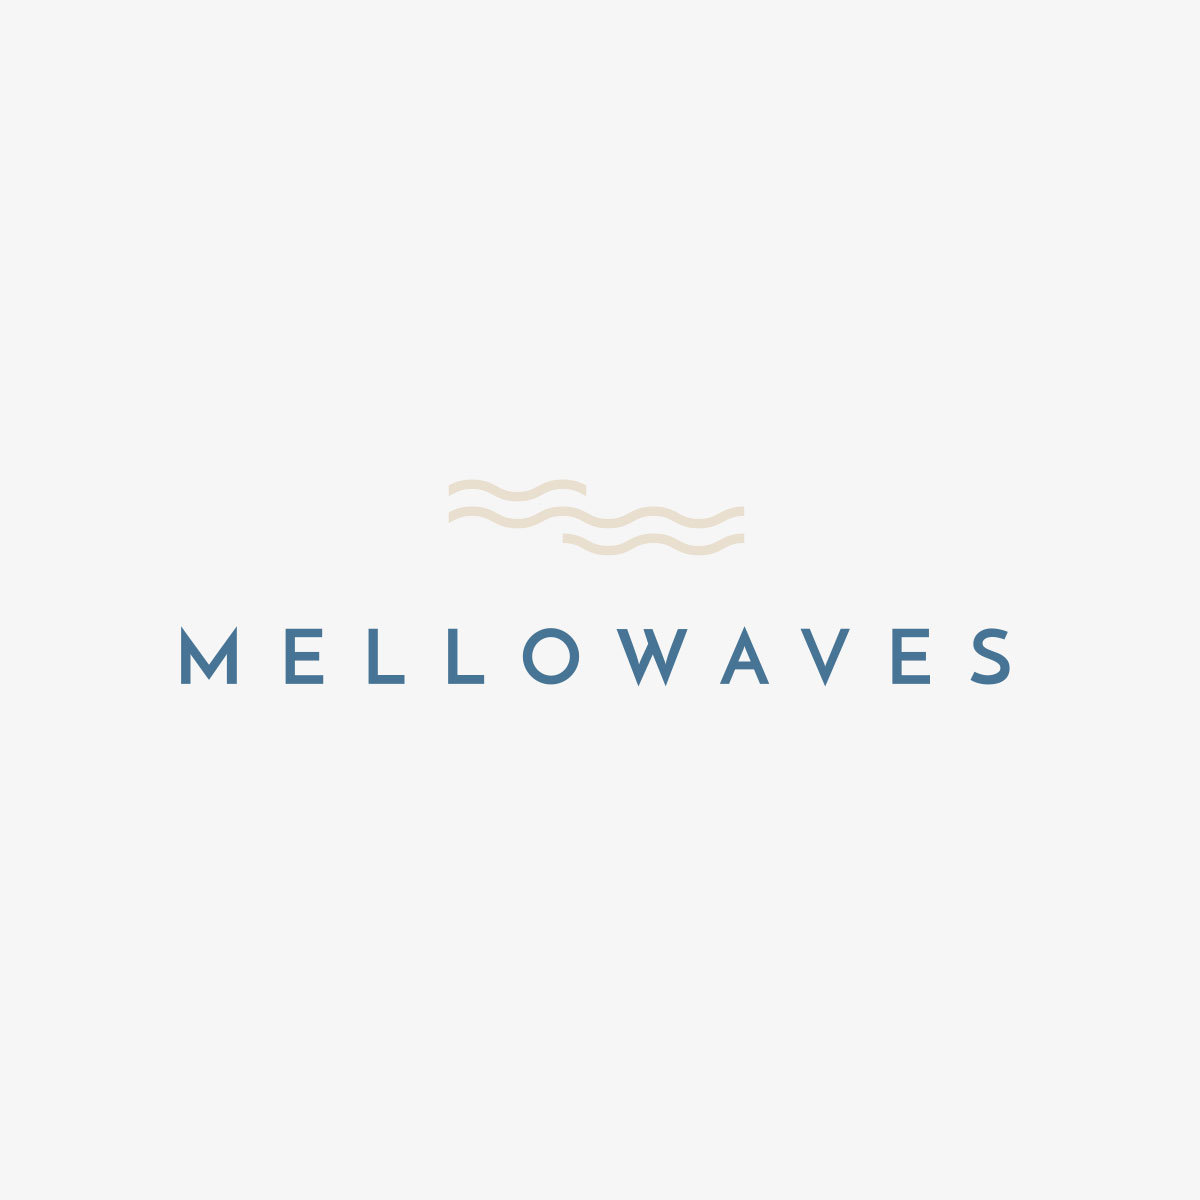 mellowaves_logo